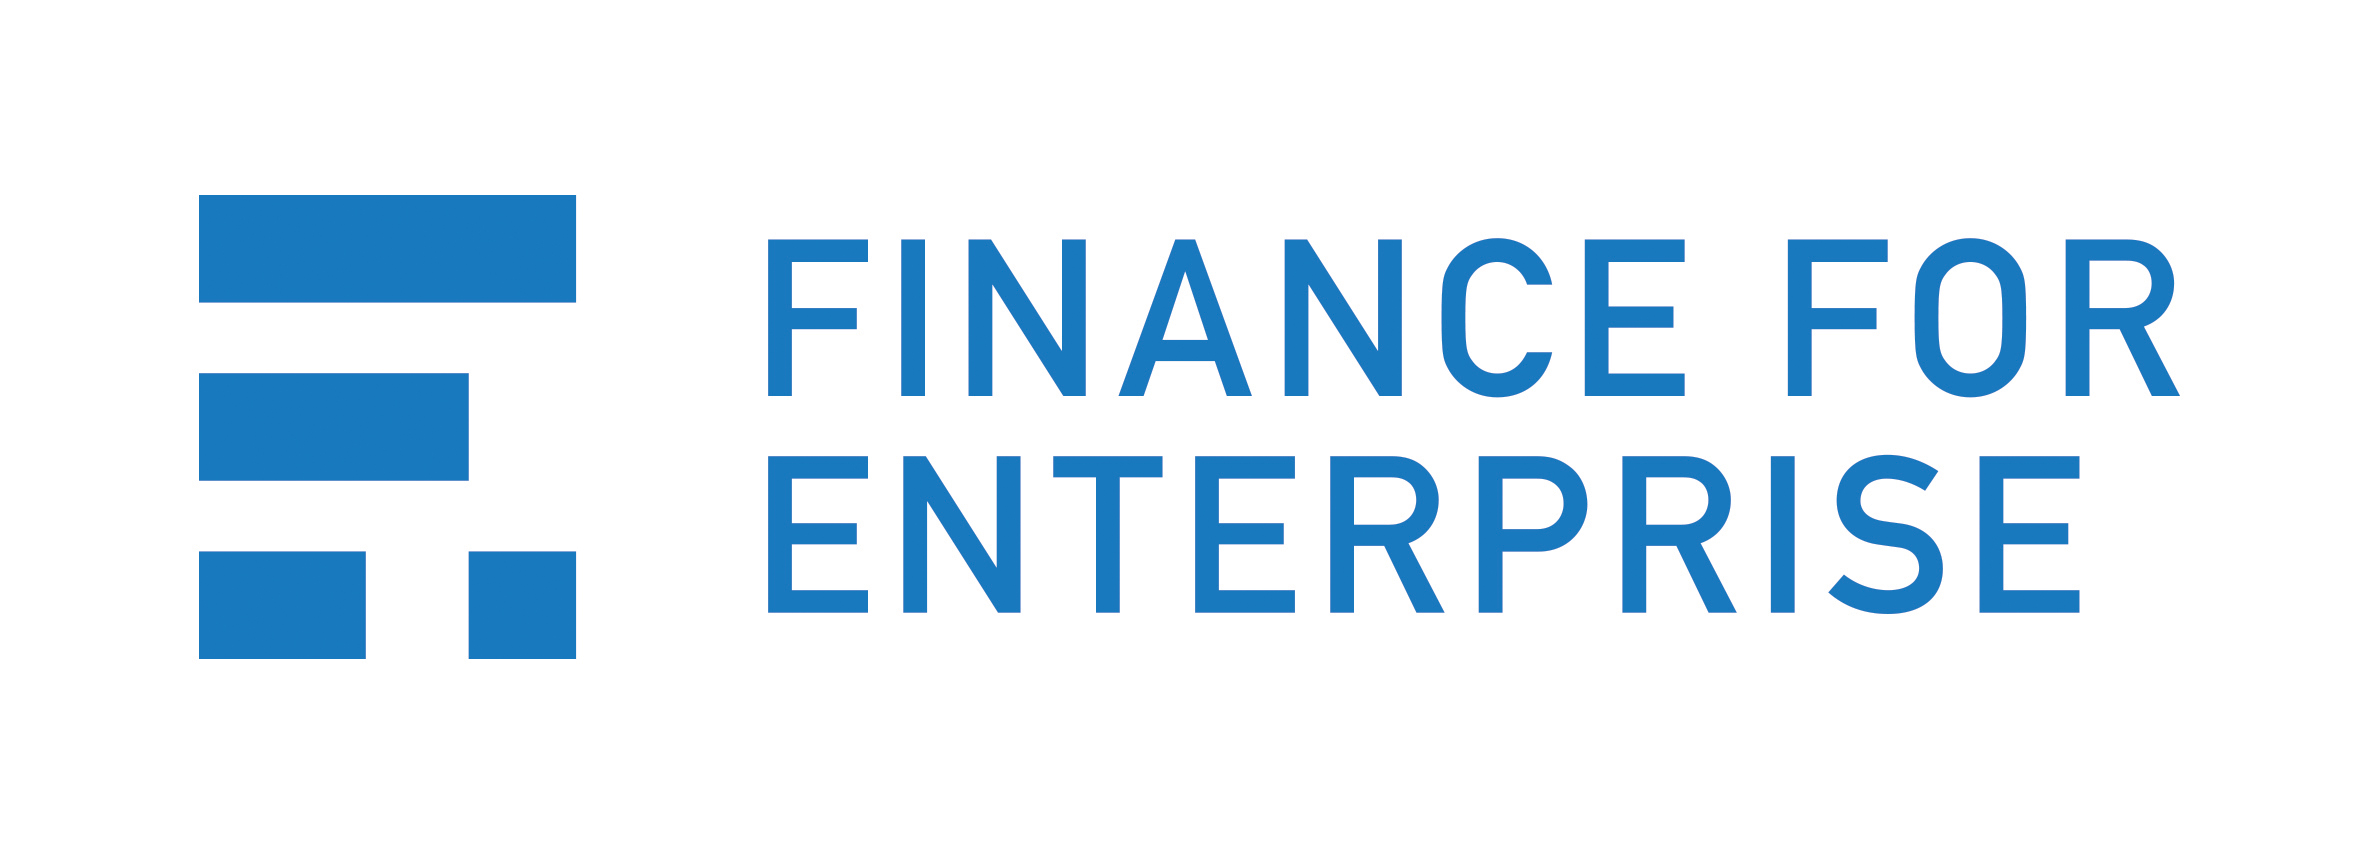 Finance For Enterprise Business Growth Award